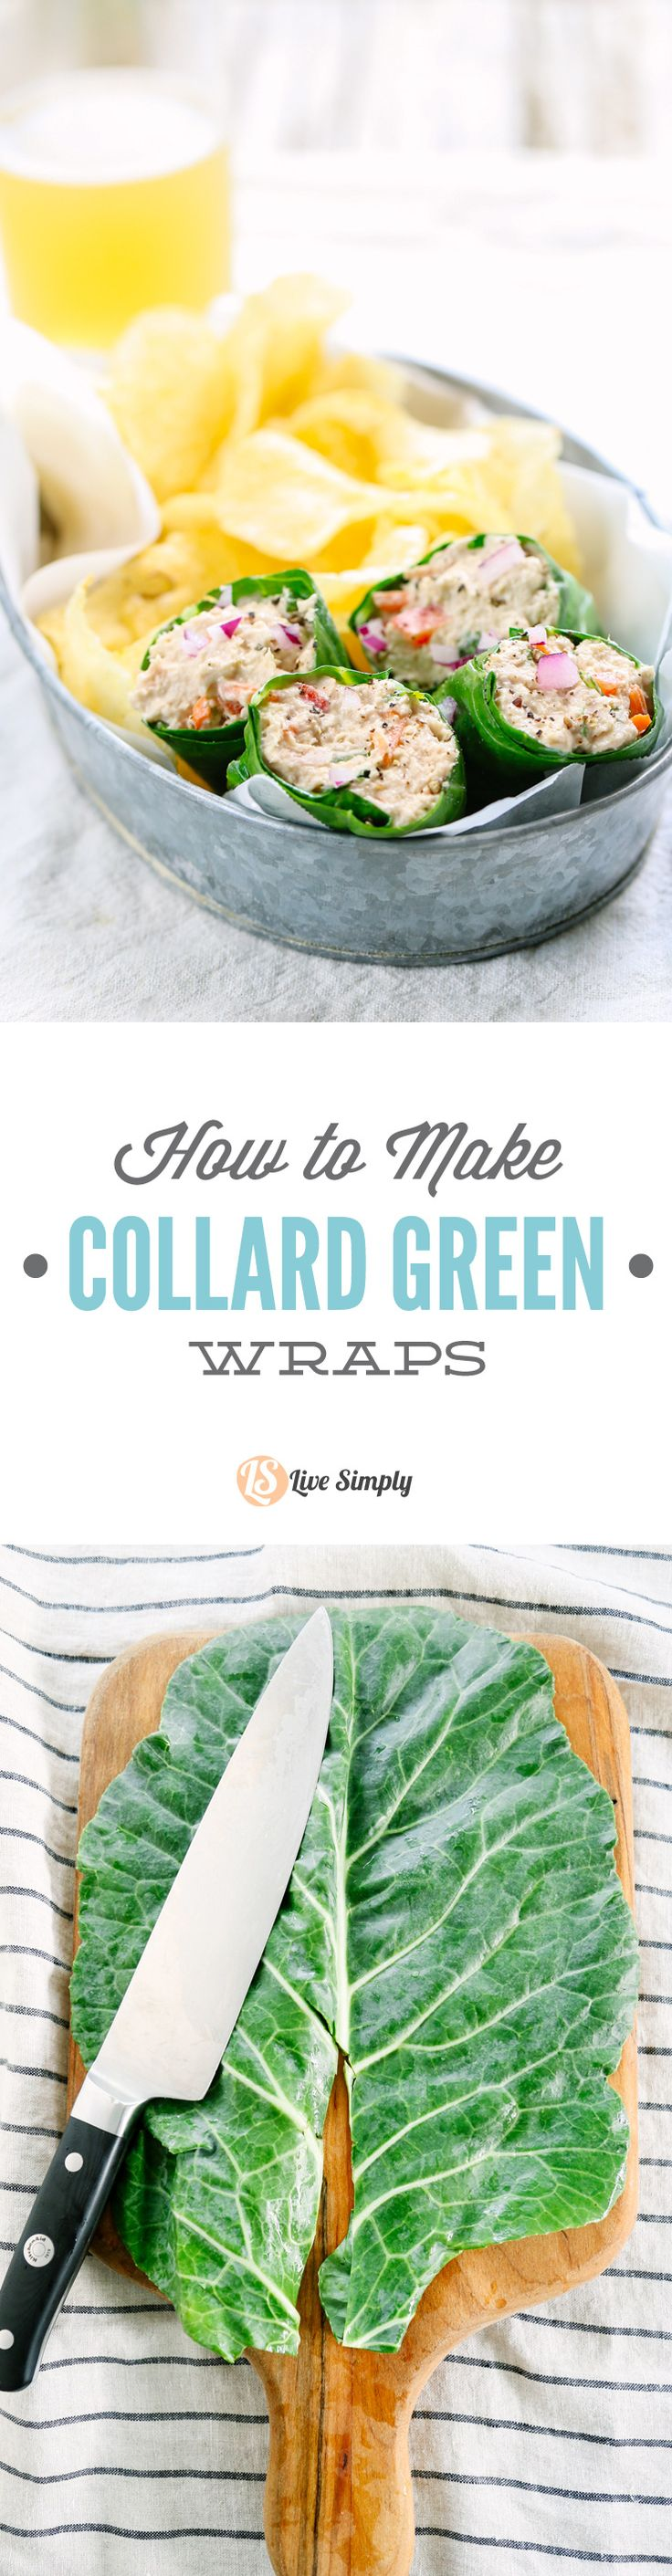 "Such a fun way to enjoy leafy greens! I fill these wraps with chicken salad, tuna salad, veggies, or ""cleaner"" lunchmeat and cheese. So yummy!"